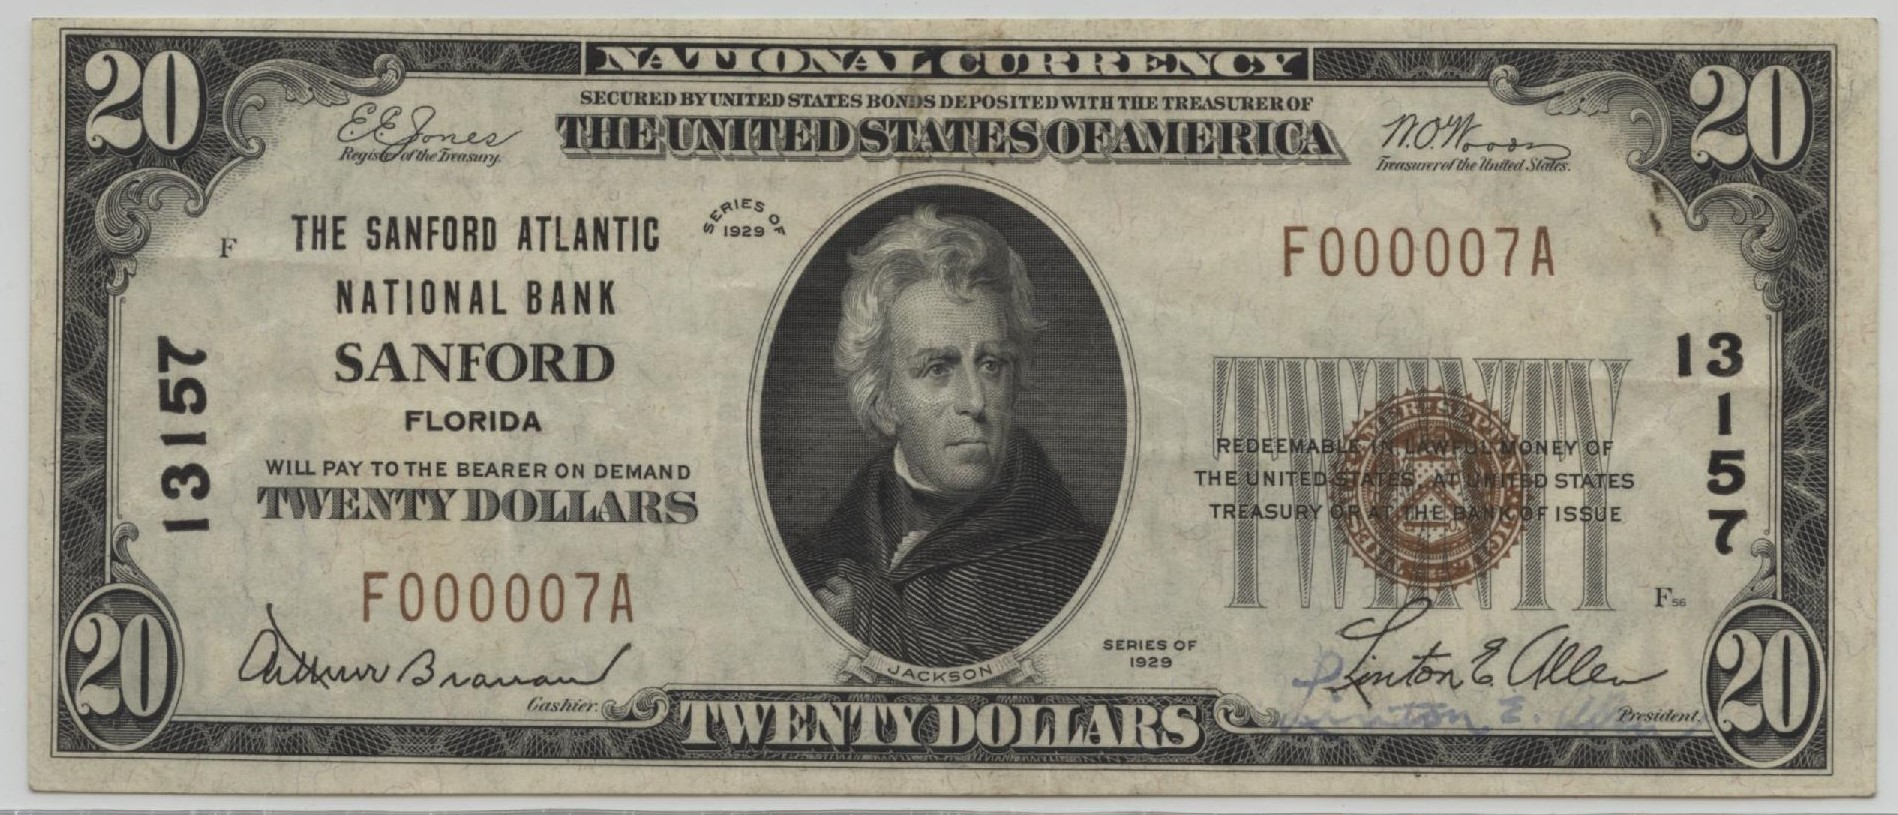 How much is a silver certificate dollar worth 1935 h best design coined for money xflitez Choice Image